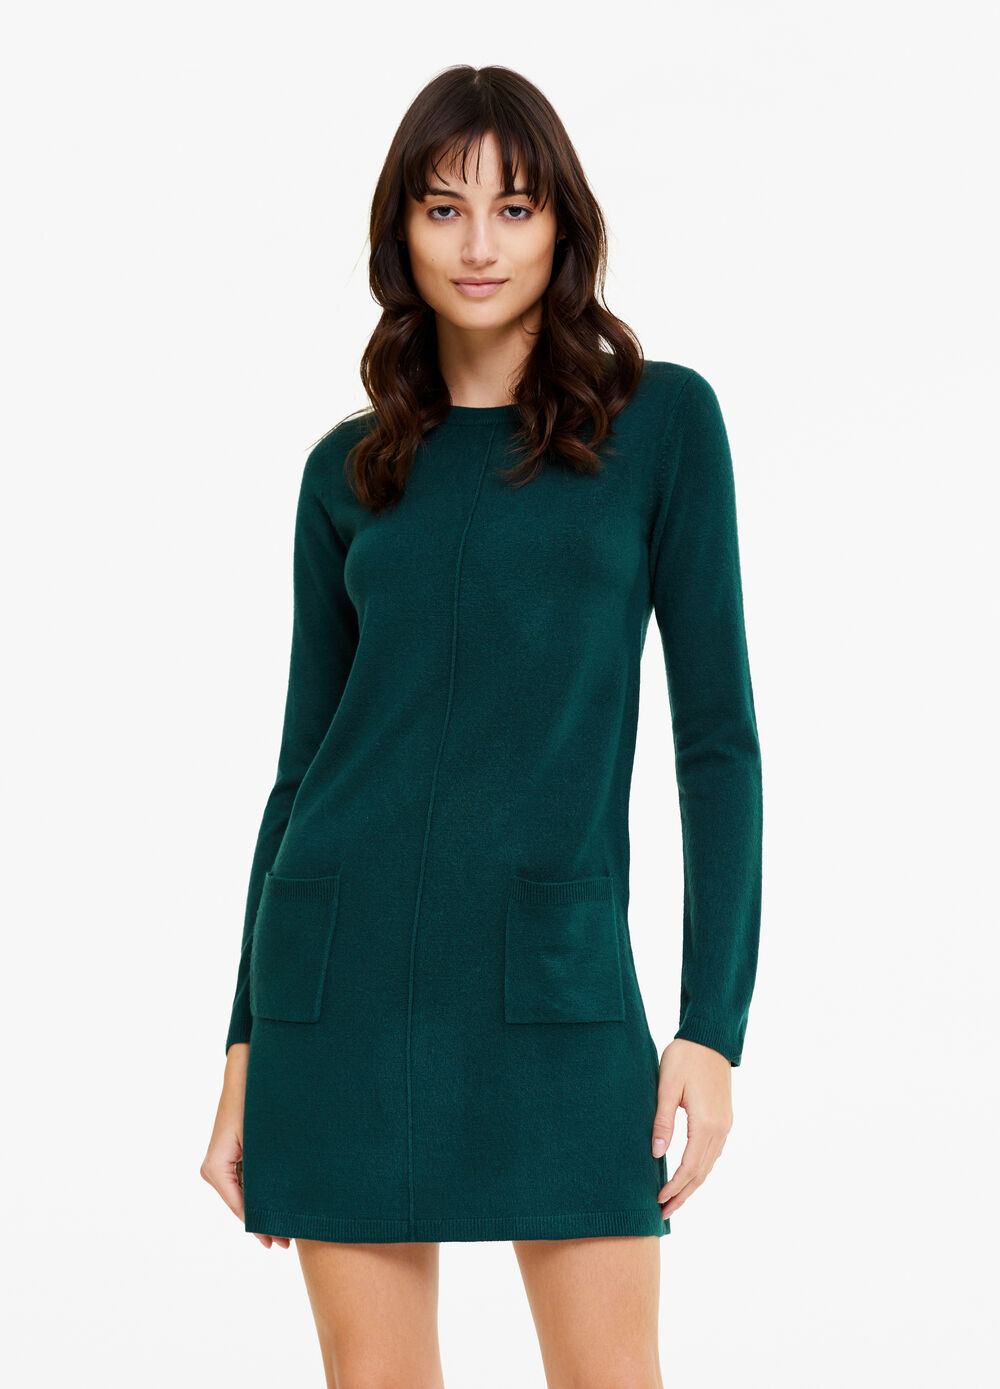 Knitted dress with long sleeves and pockets